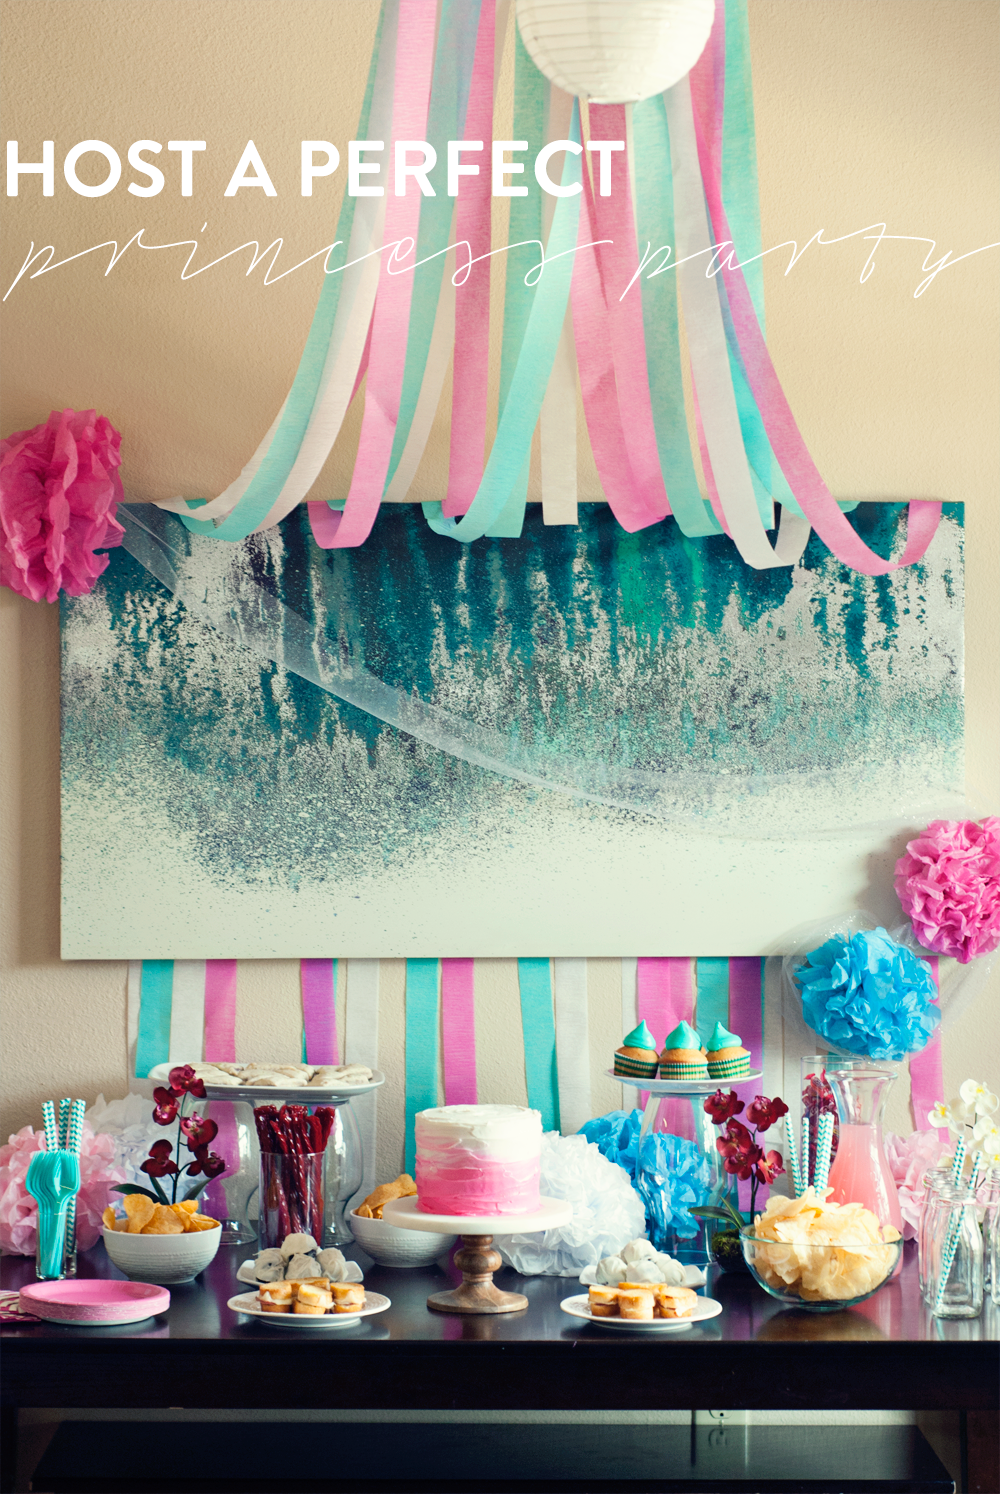 It's easy to host a perfect princess party when you have the right tools for success! Your princesses will agree!